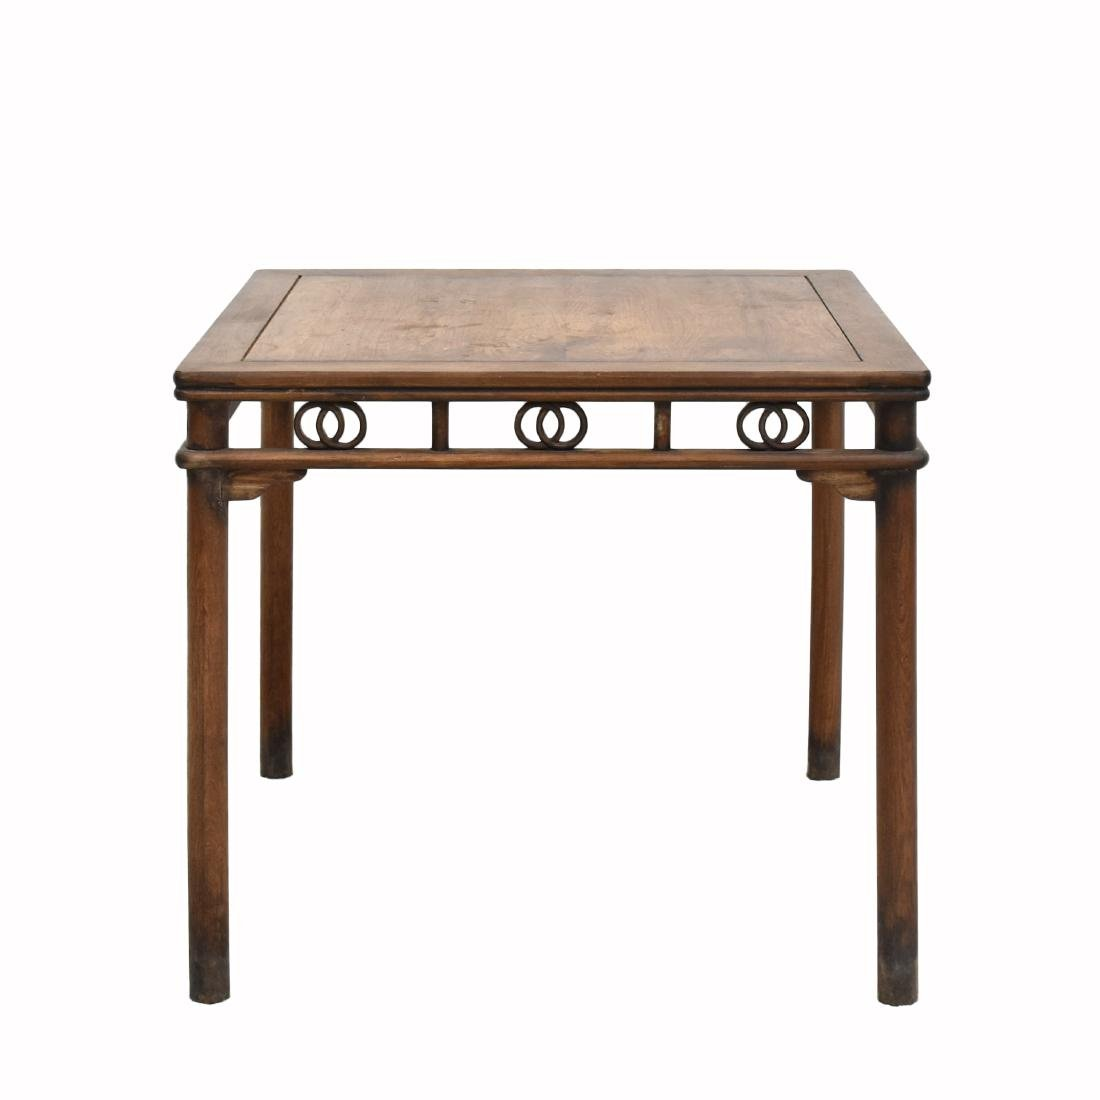 19TH C HUANGHUALI SQUARE TABLE WITH DOUBLE COINS MOTIF